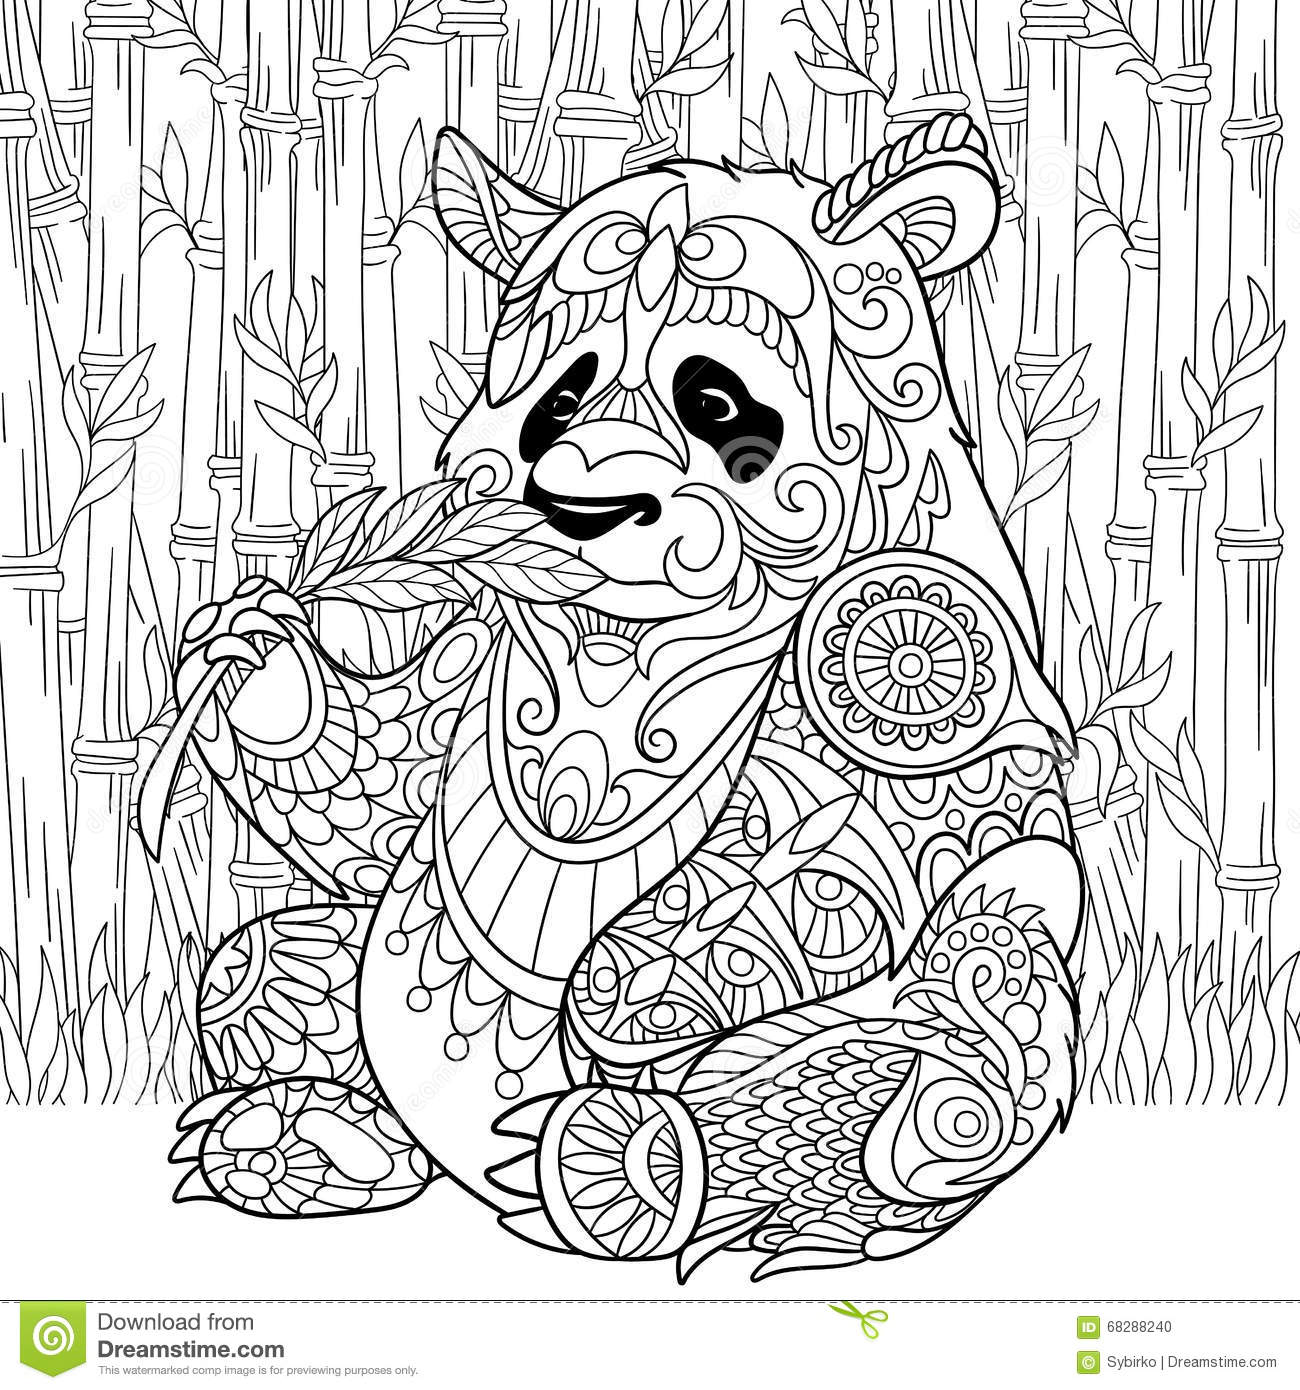 coloring page hand drawn doodle zentangle floral design elements